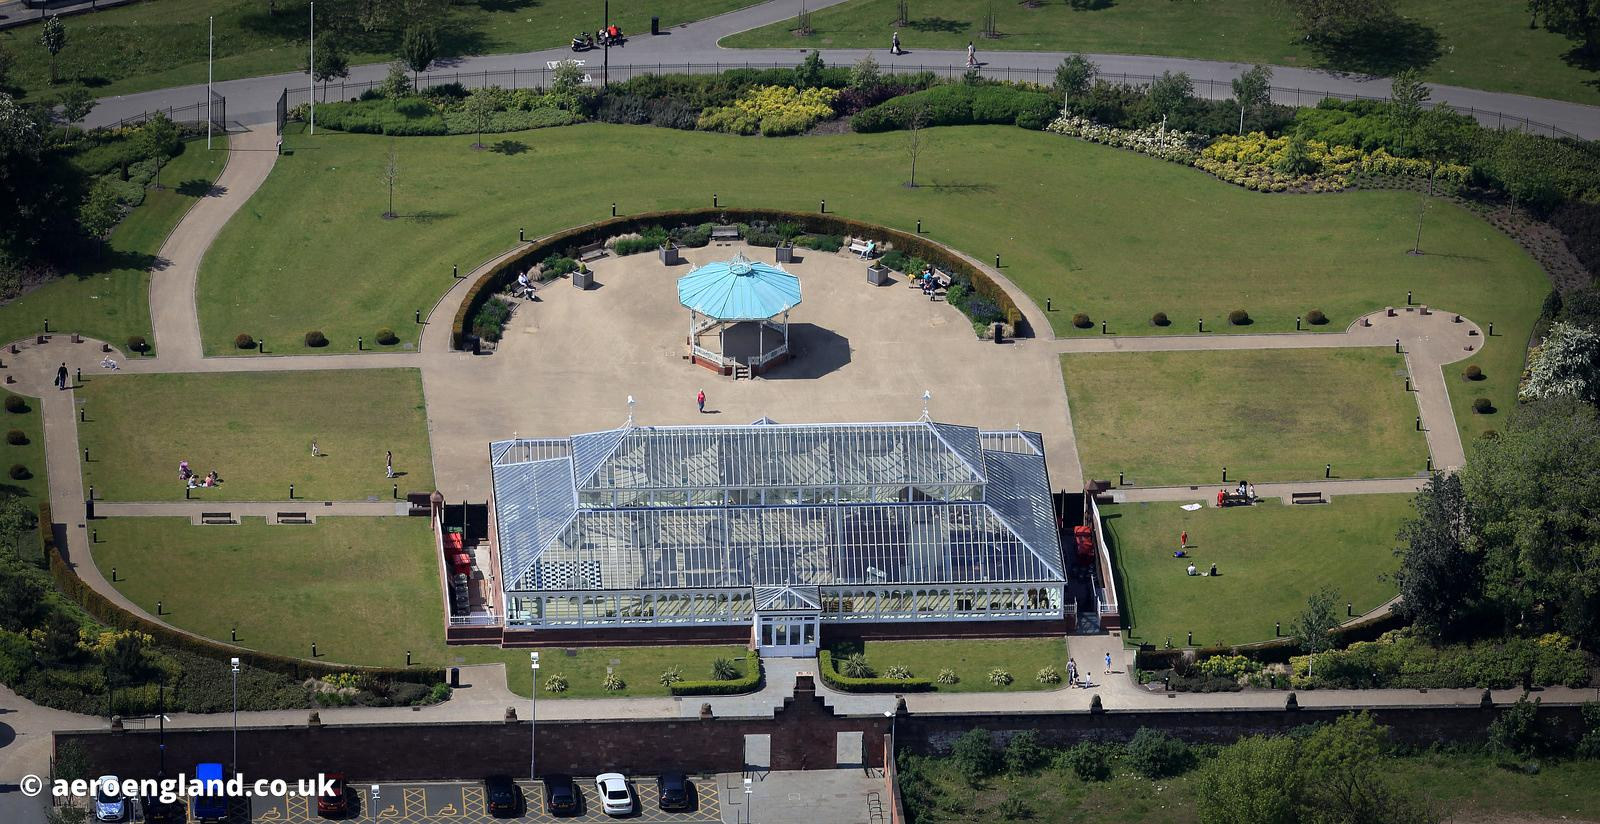 aerial photograph of the restored Gladstone Pavilion, Stanley Park, Liverpool  Merseyside England UK